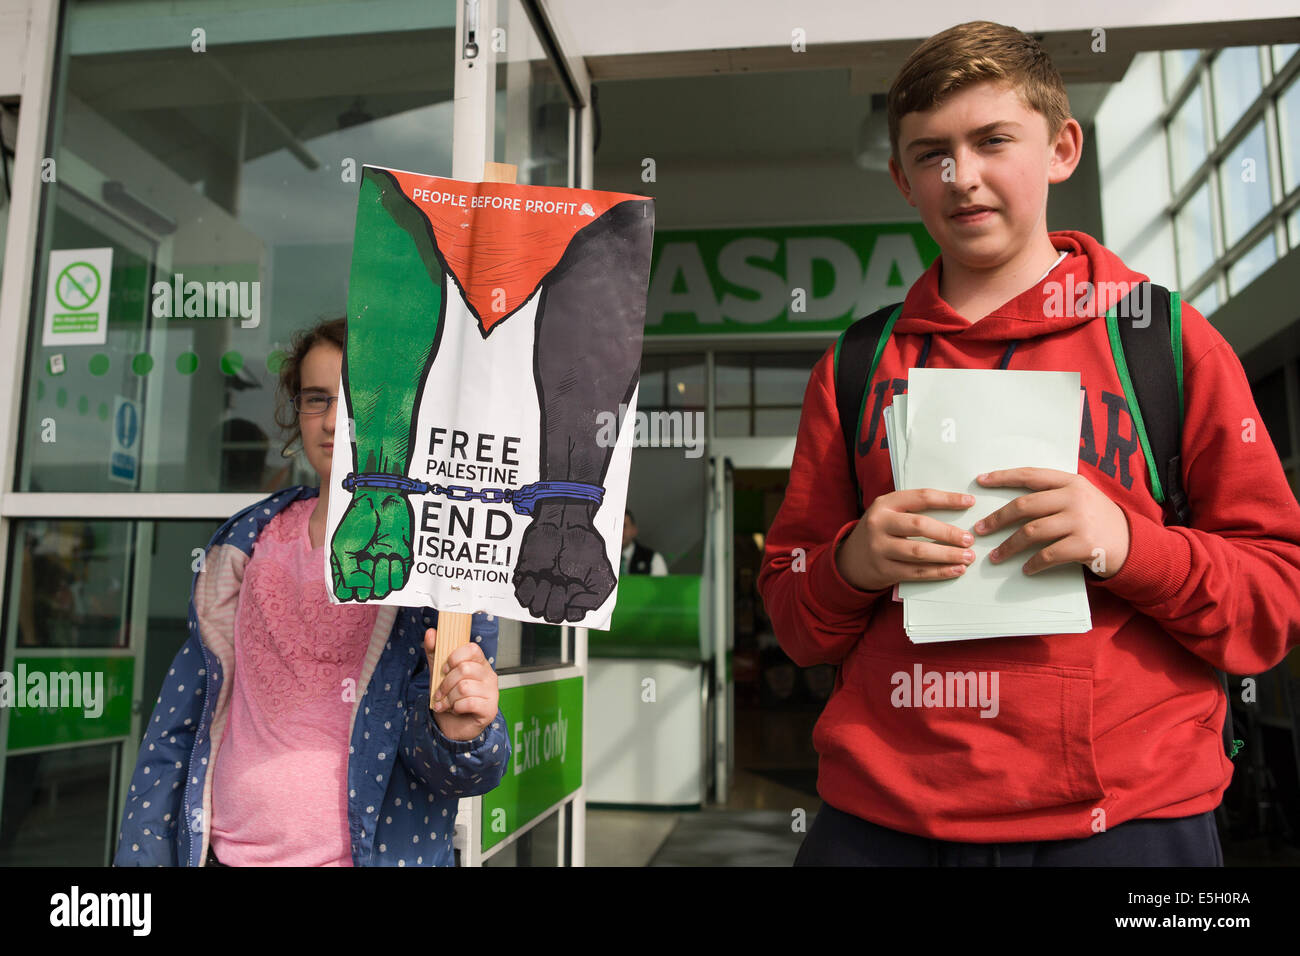 Andersonstown Rd, West Belfast, Ireland. 31st July, 2014. Children protesting outside ASDA supermarket. the protest - Stock Image